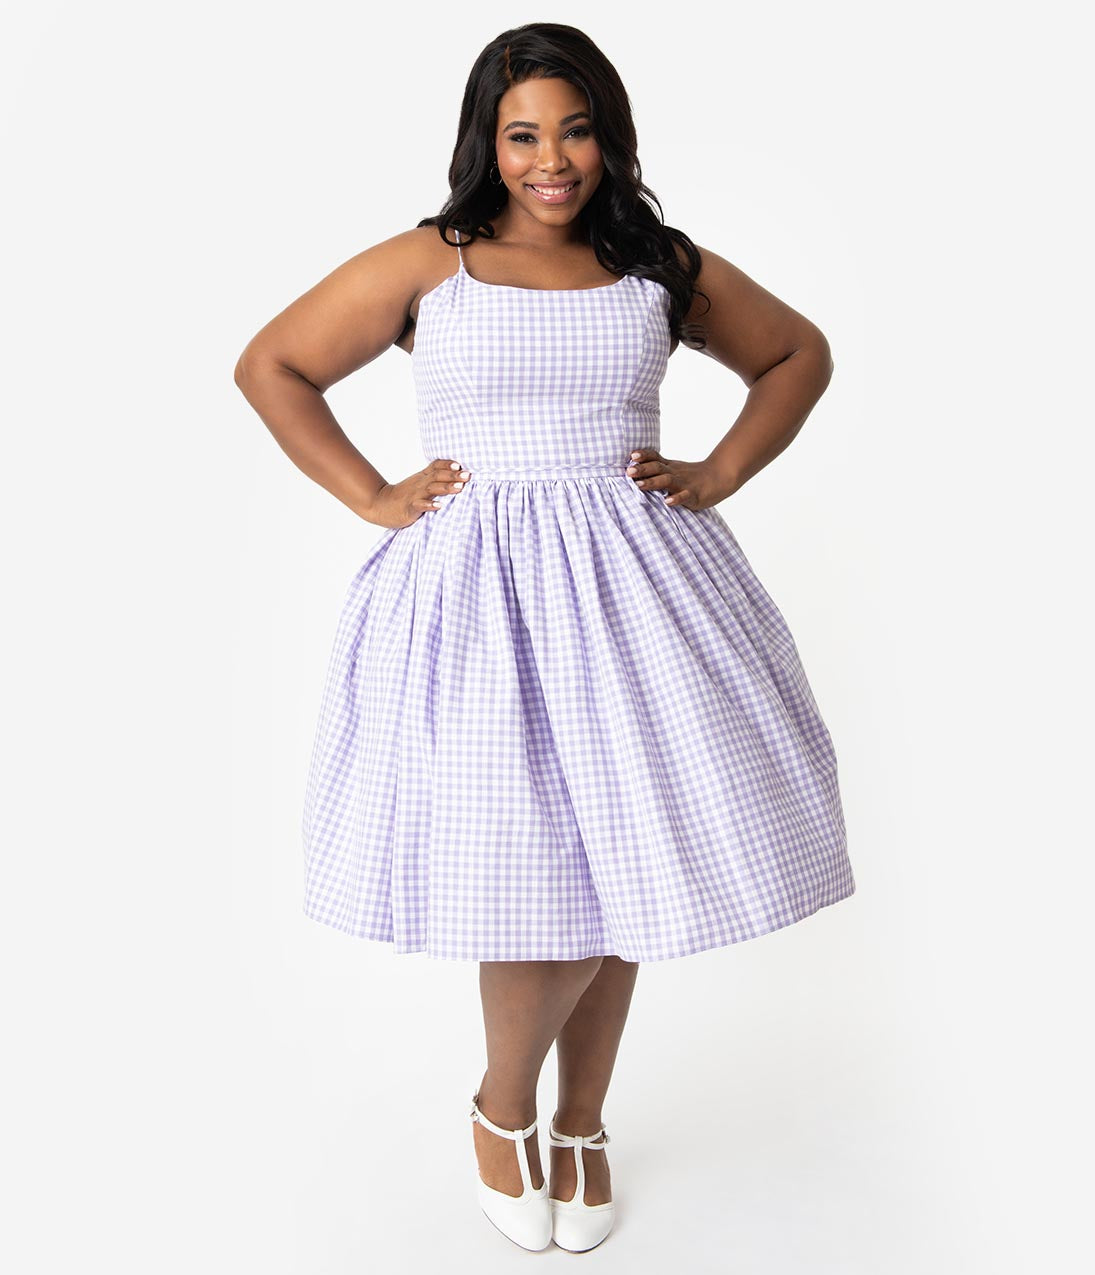 Plus Size Swing-Skirt Spaghetti Strap Natural Waistline Darts Vintage Fitted Hidden Side Zipper Gathered Pocketed Checkered Gingham Print Cotton Party Dress